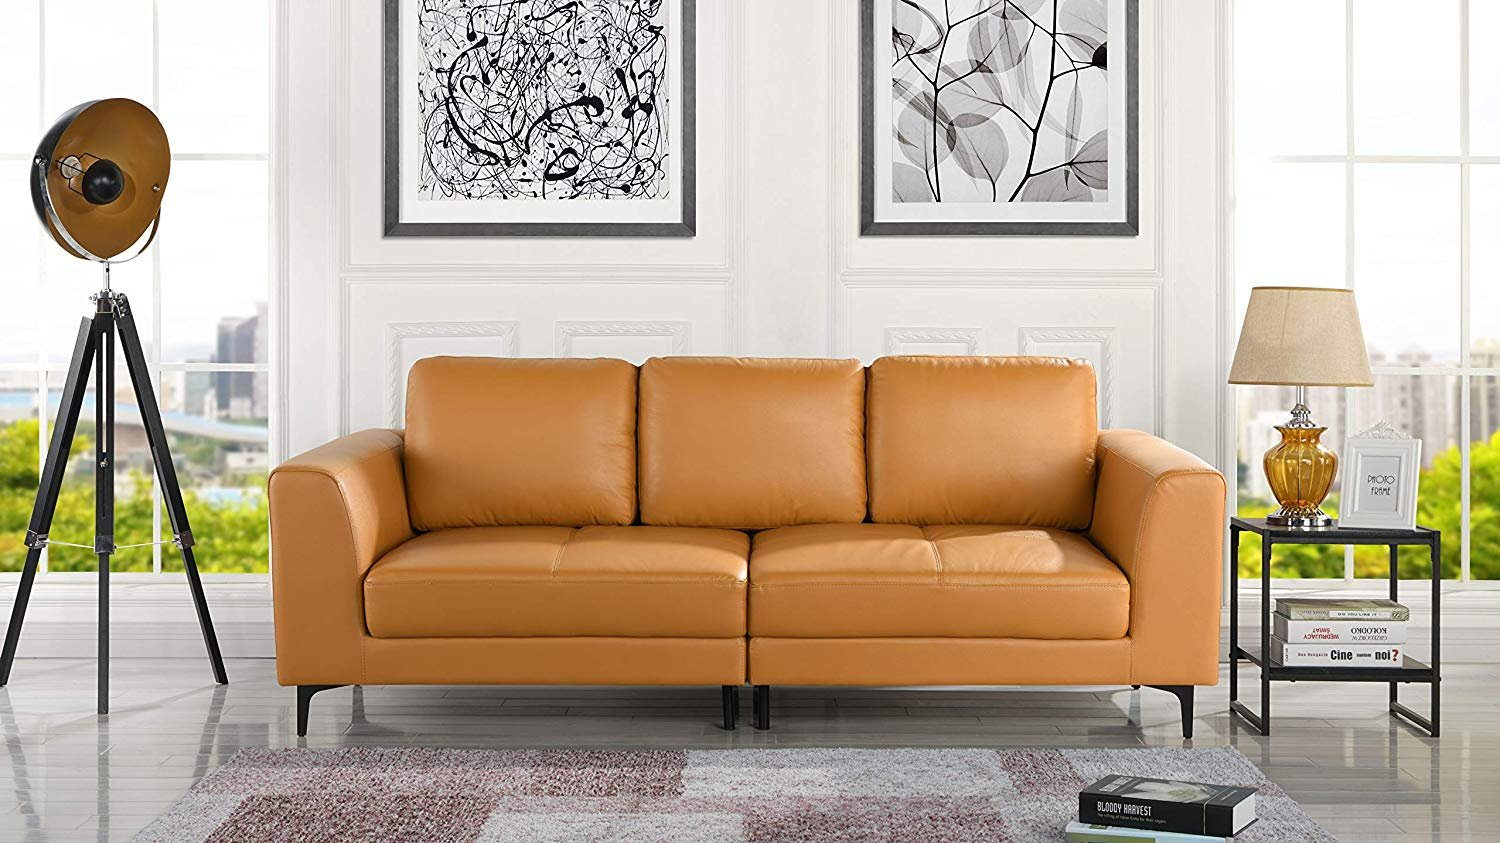 Details about Mid Century Modern Leather Fabric 3 Seat Sofa, Couch 81.1\